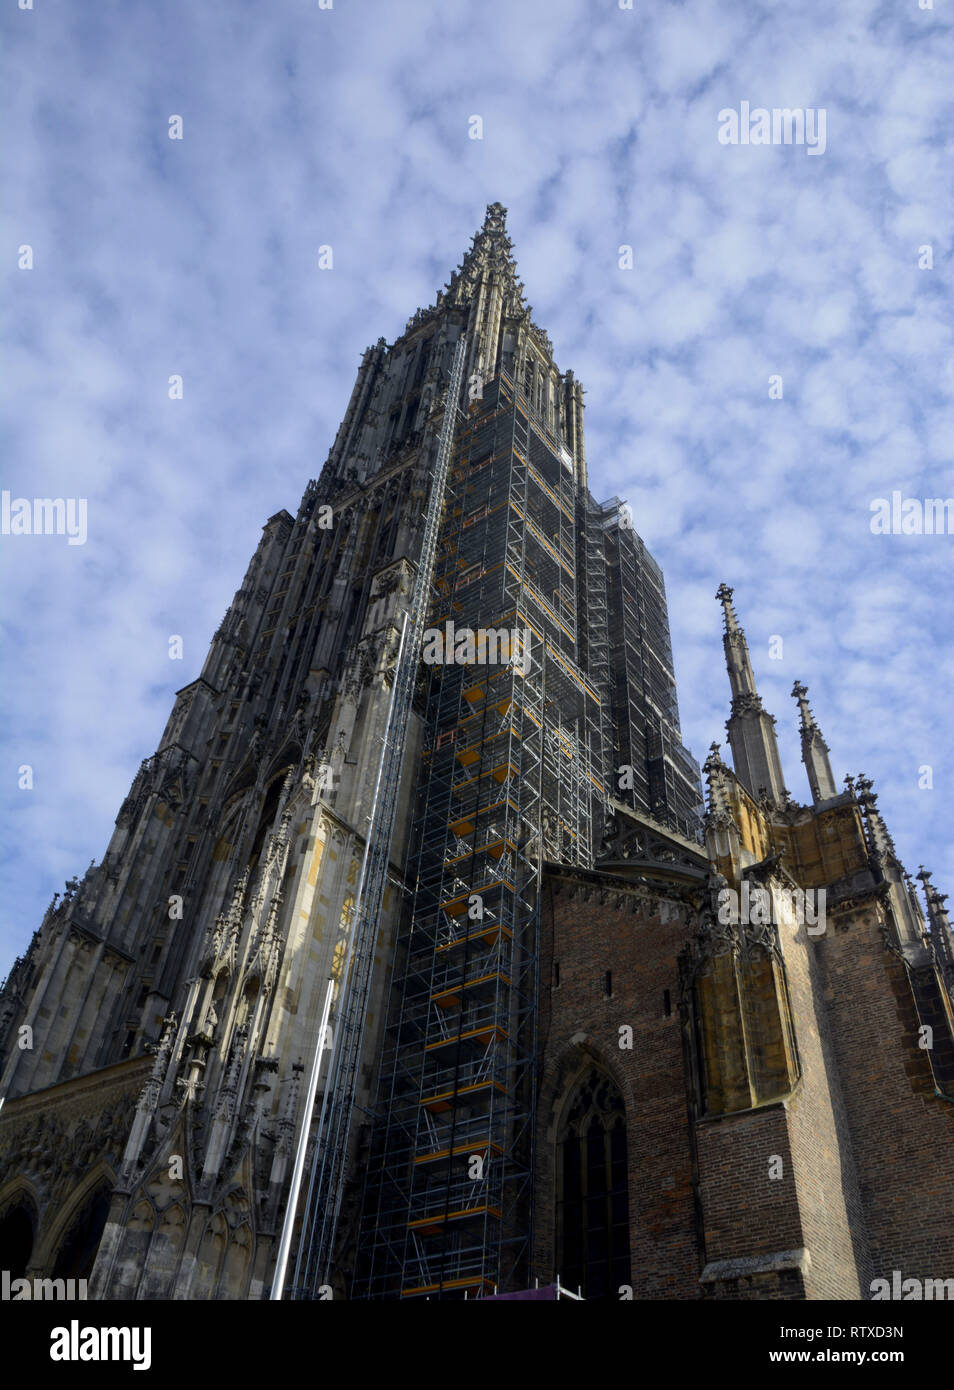 Ulm Minster exterior view from the west in front of blue sky covered with small clouds, tallest church of the world the minster of ulm abstract exteri Stock Photo